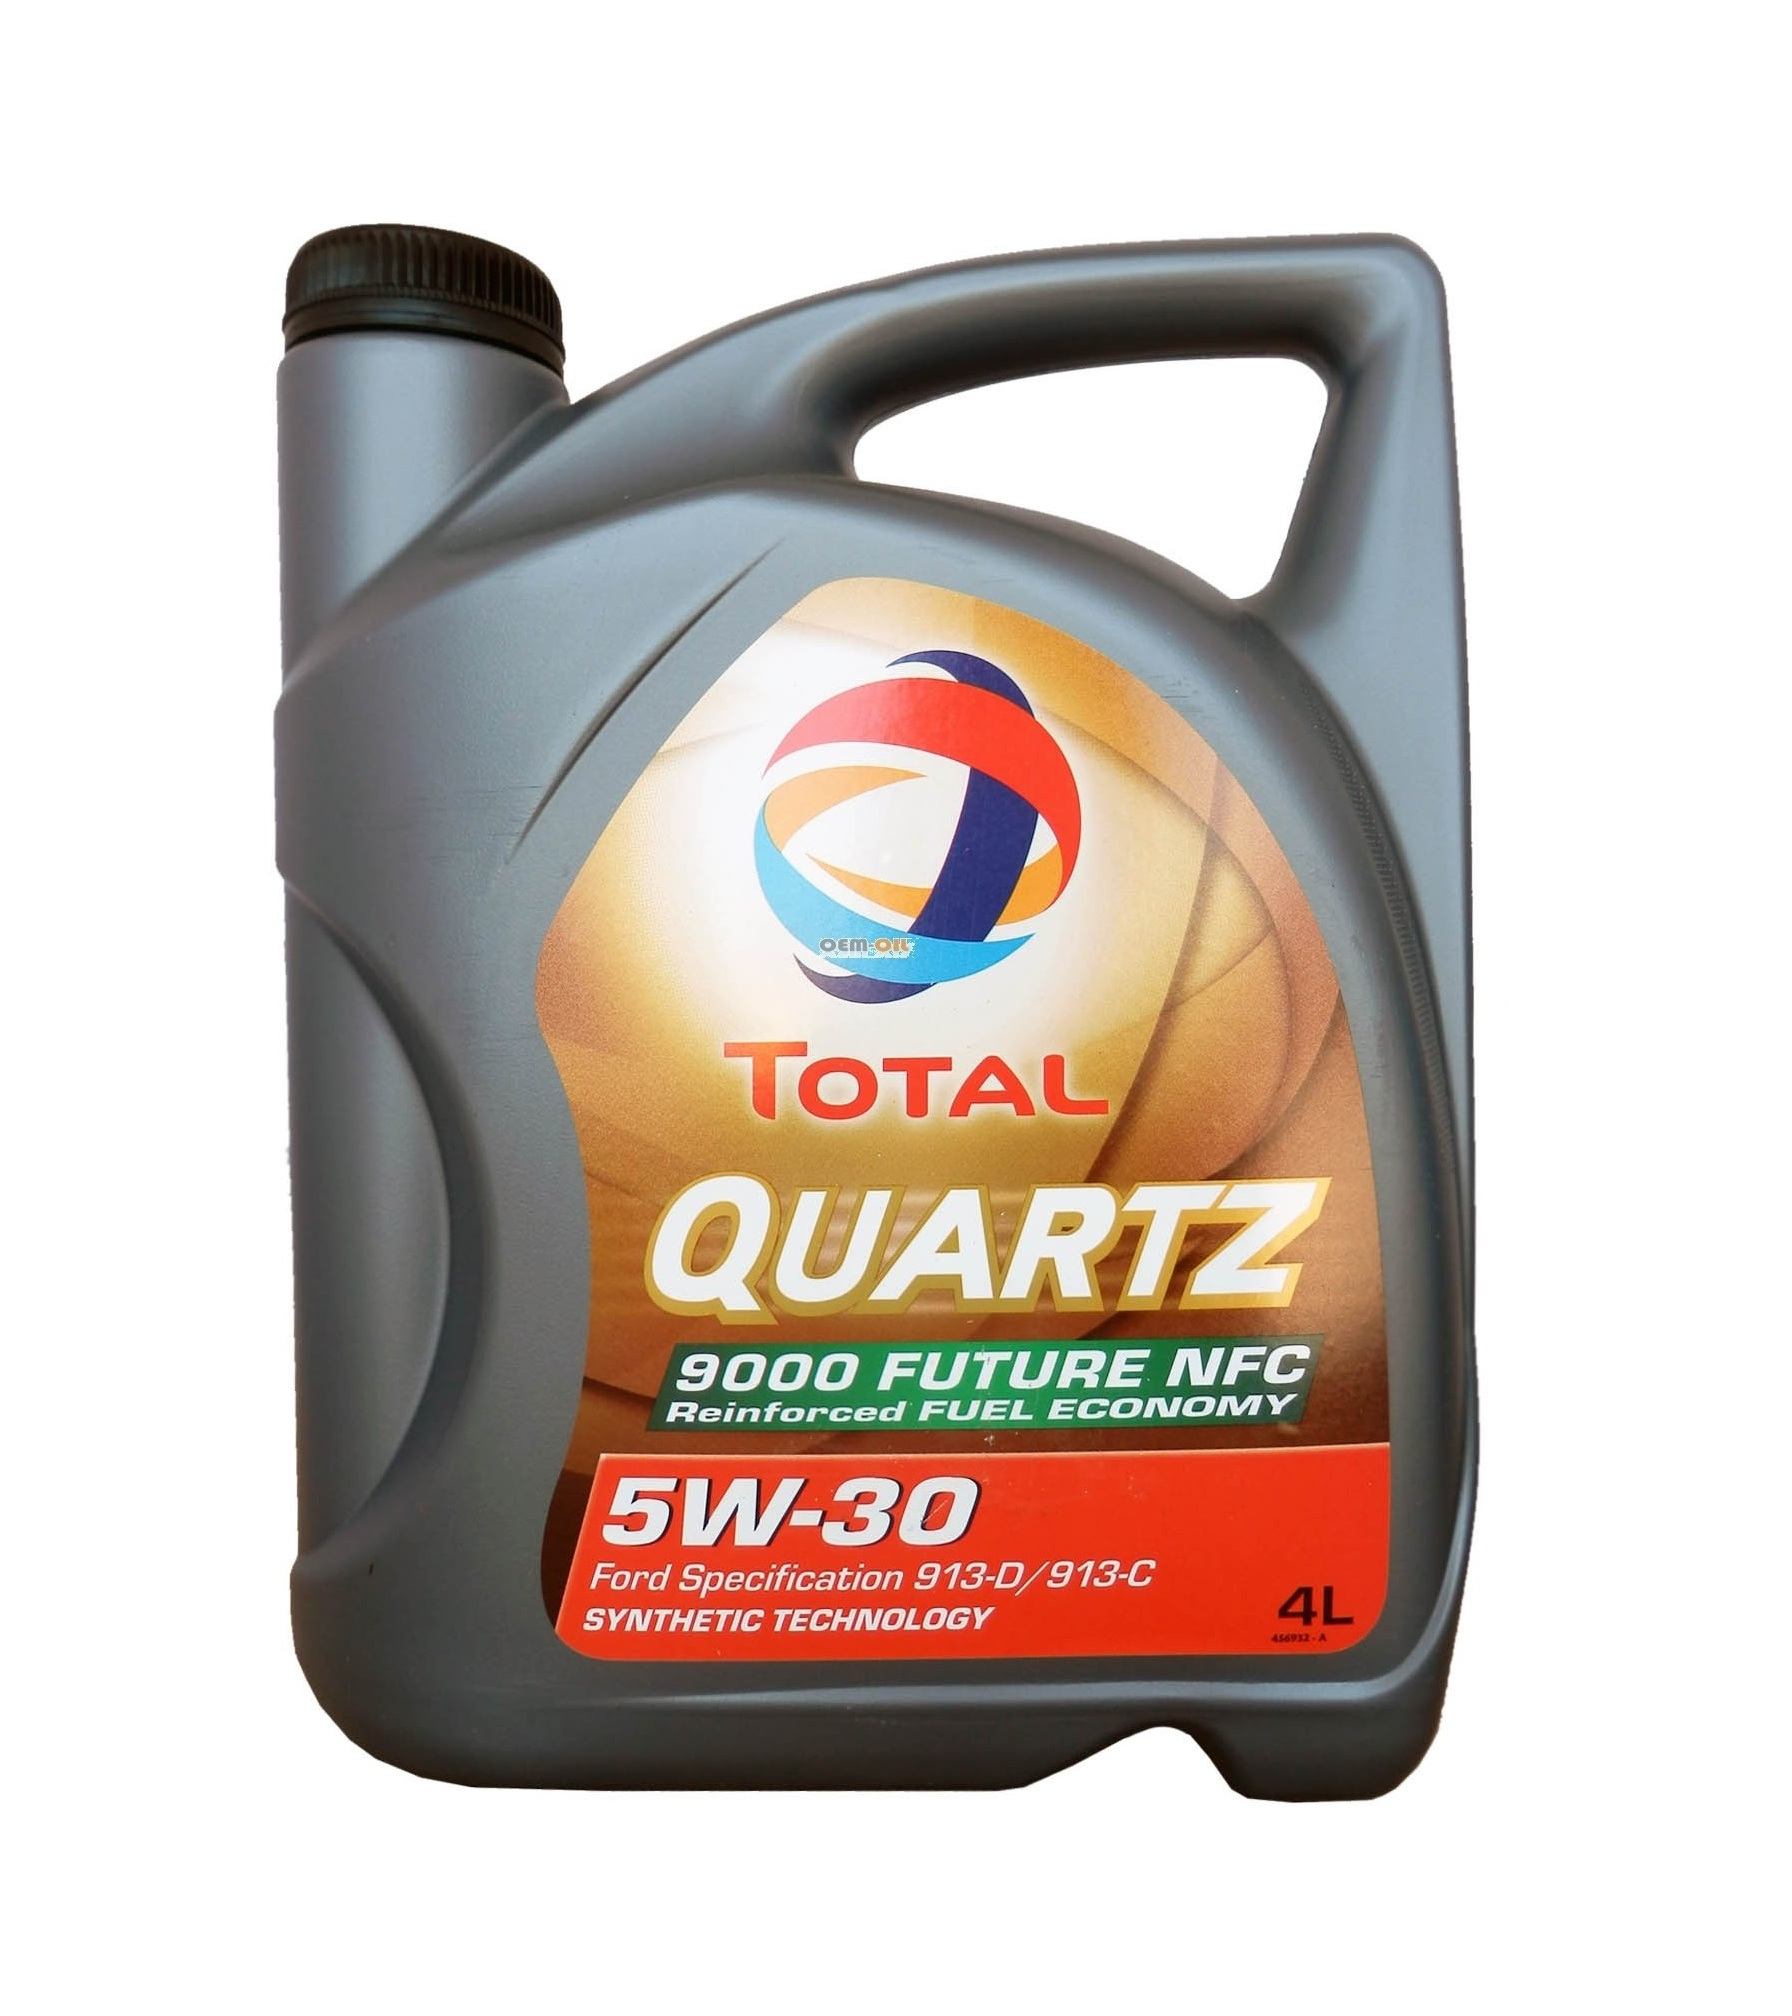 TOTAL QUARTZ 9000 FUTURE NFC 5W-30 (4 л)